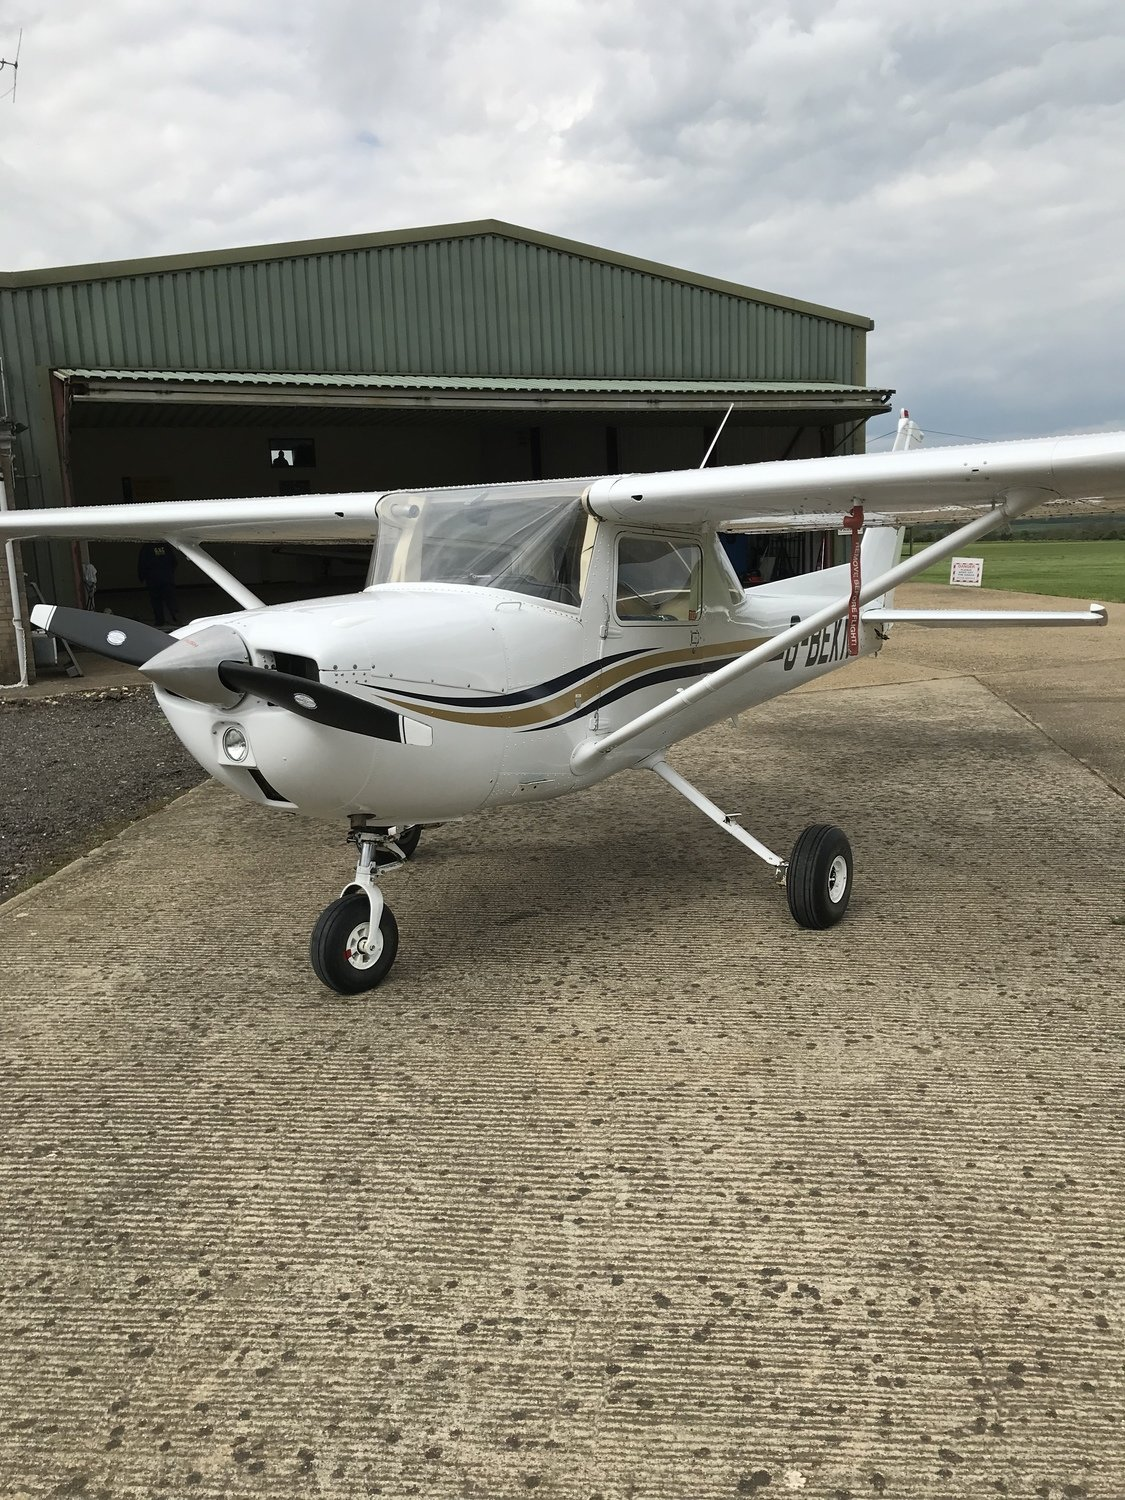 60 Minute Trial Flying Experience for One Person